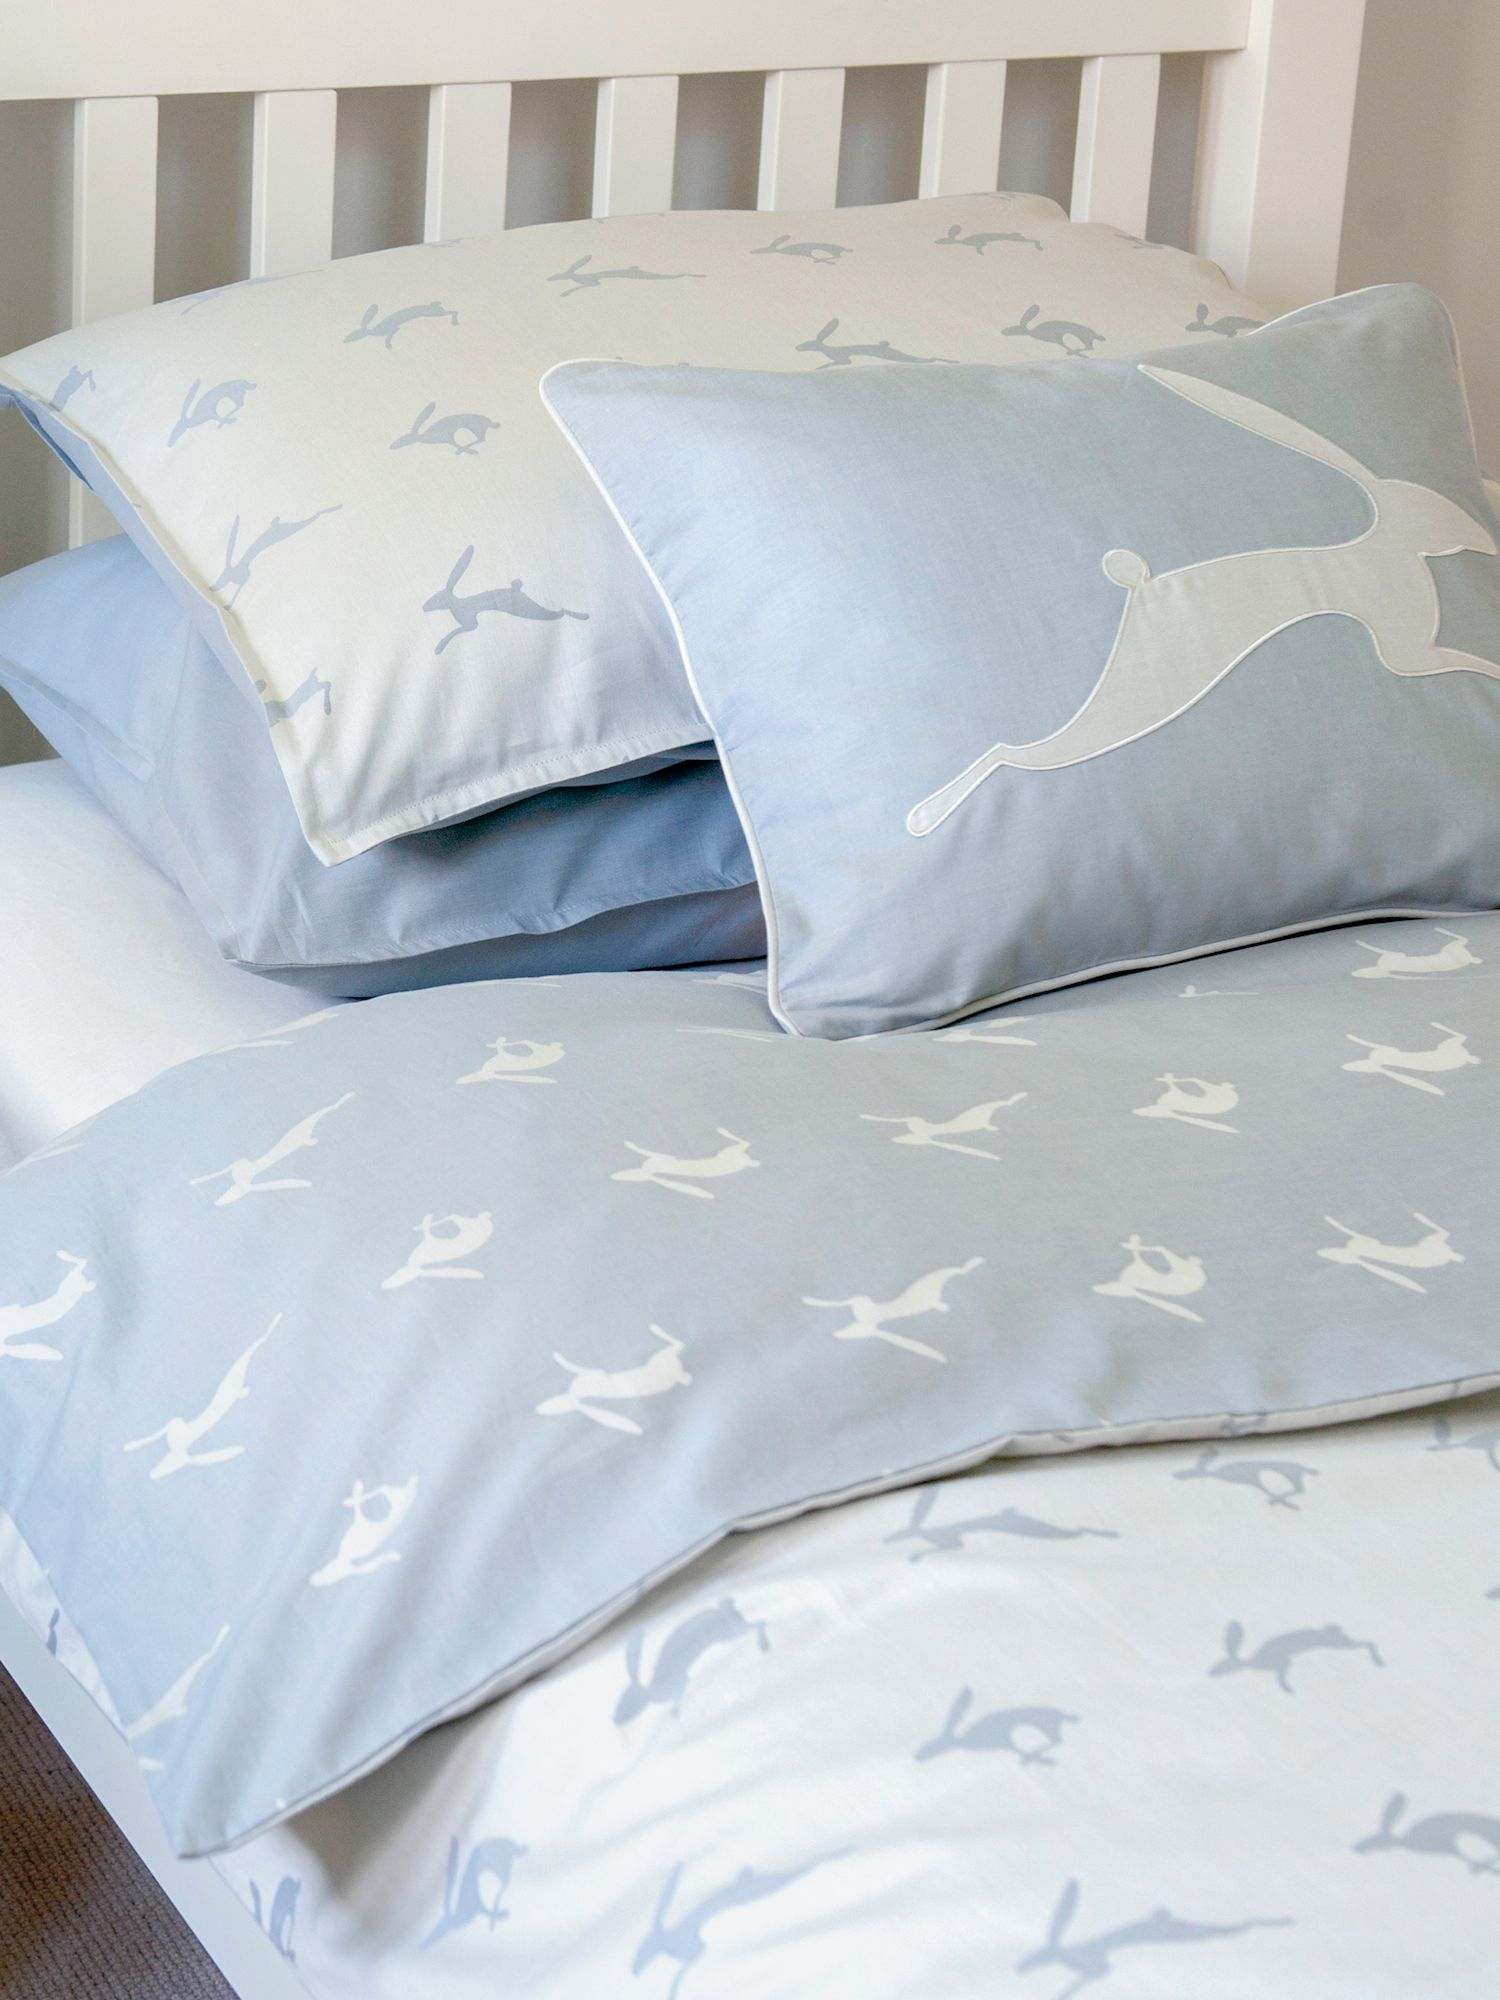 Harriet Hare Harriet Hare Running Hare fitted sheet